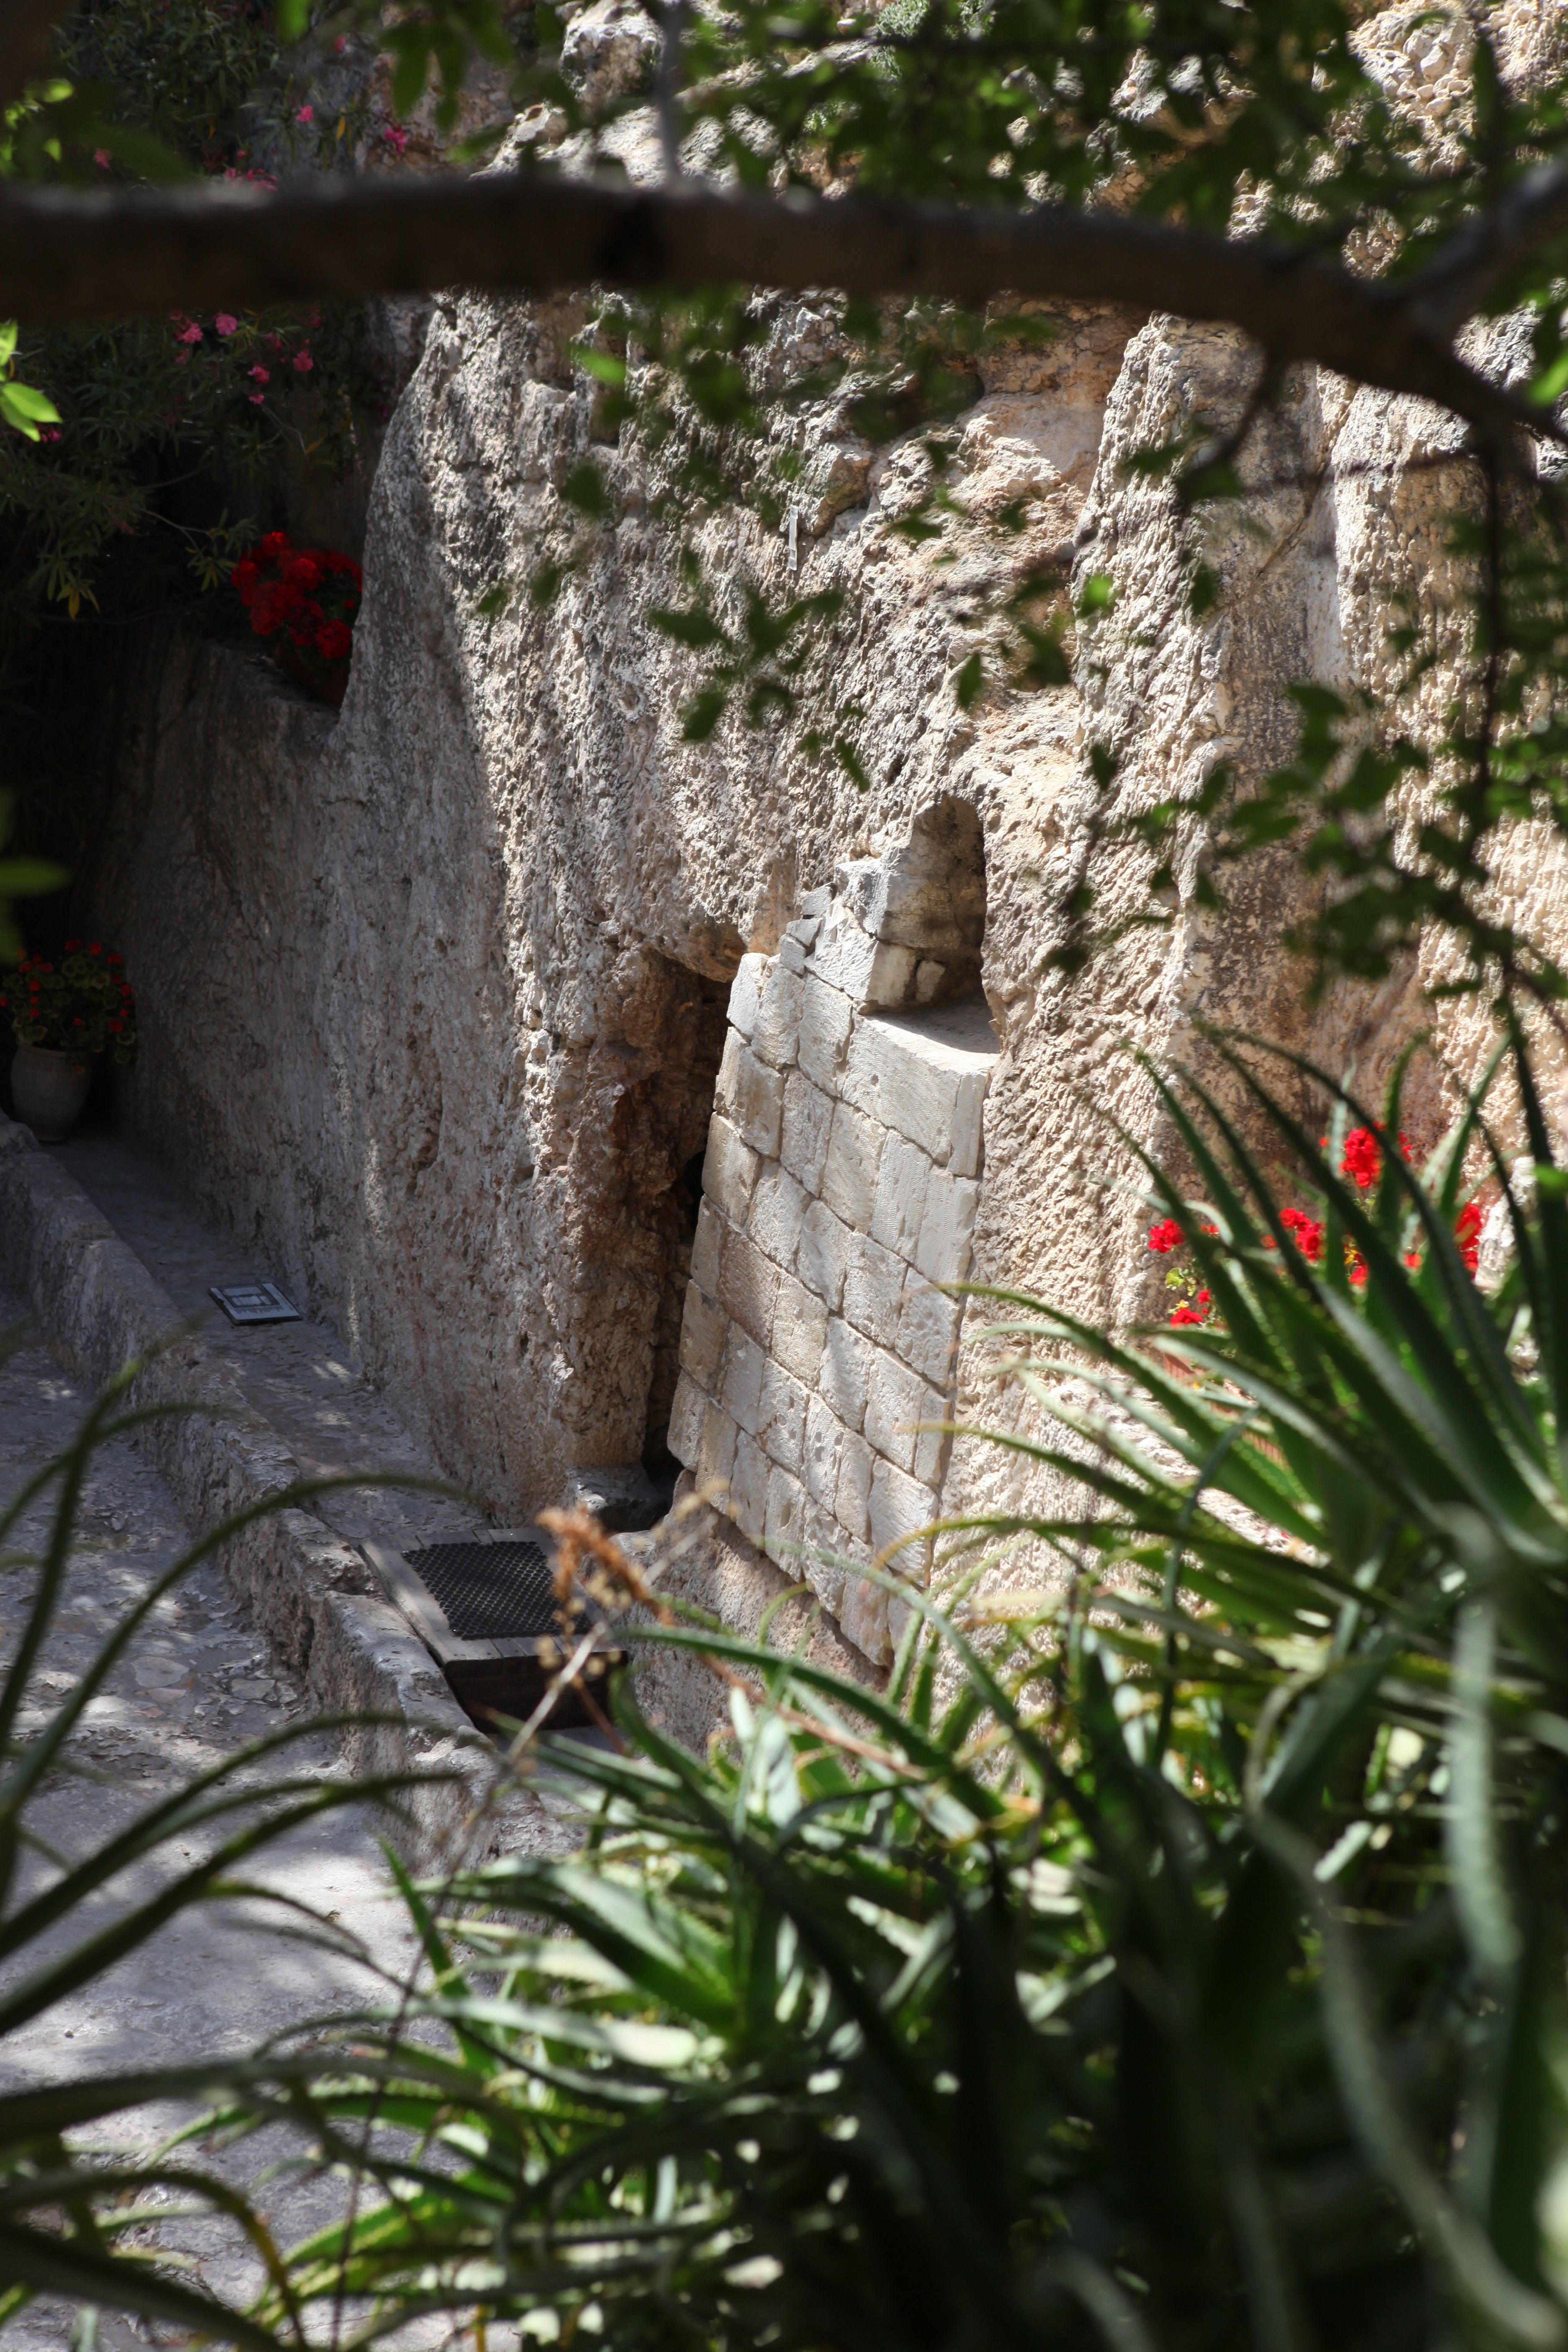 An image of the entrance to the Garden Tomb in Jerusalem.